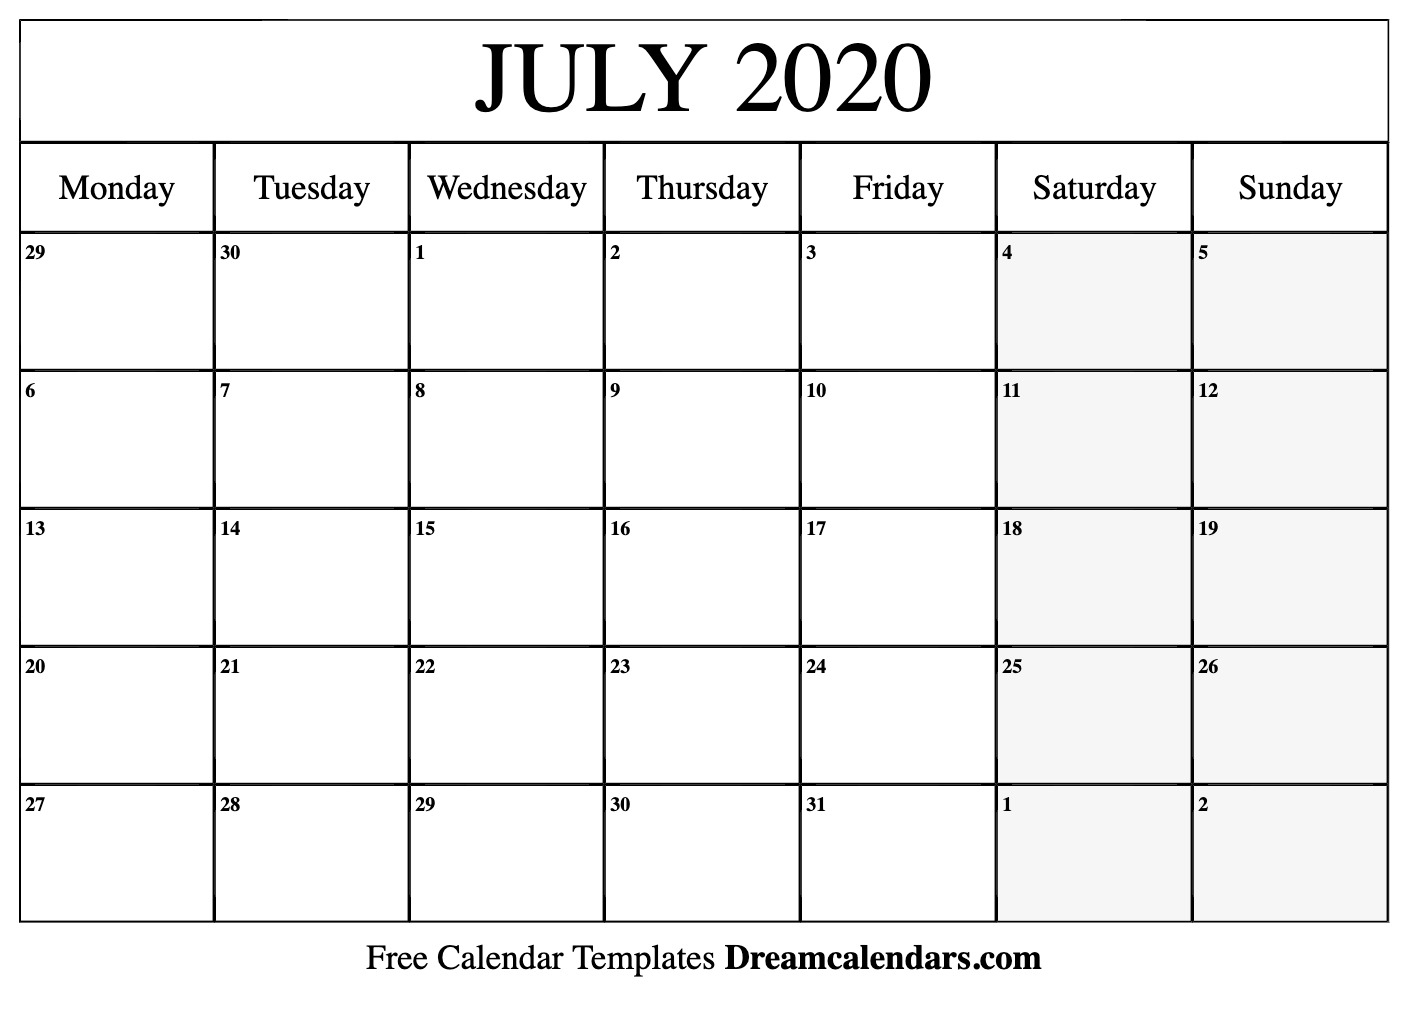 Free Blank July 2020 Printable Calendar throughout Kalendar Kuda September 2020